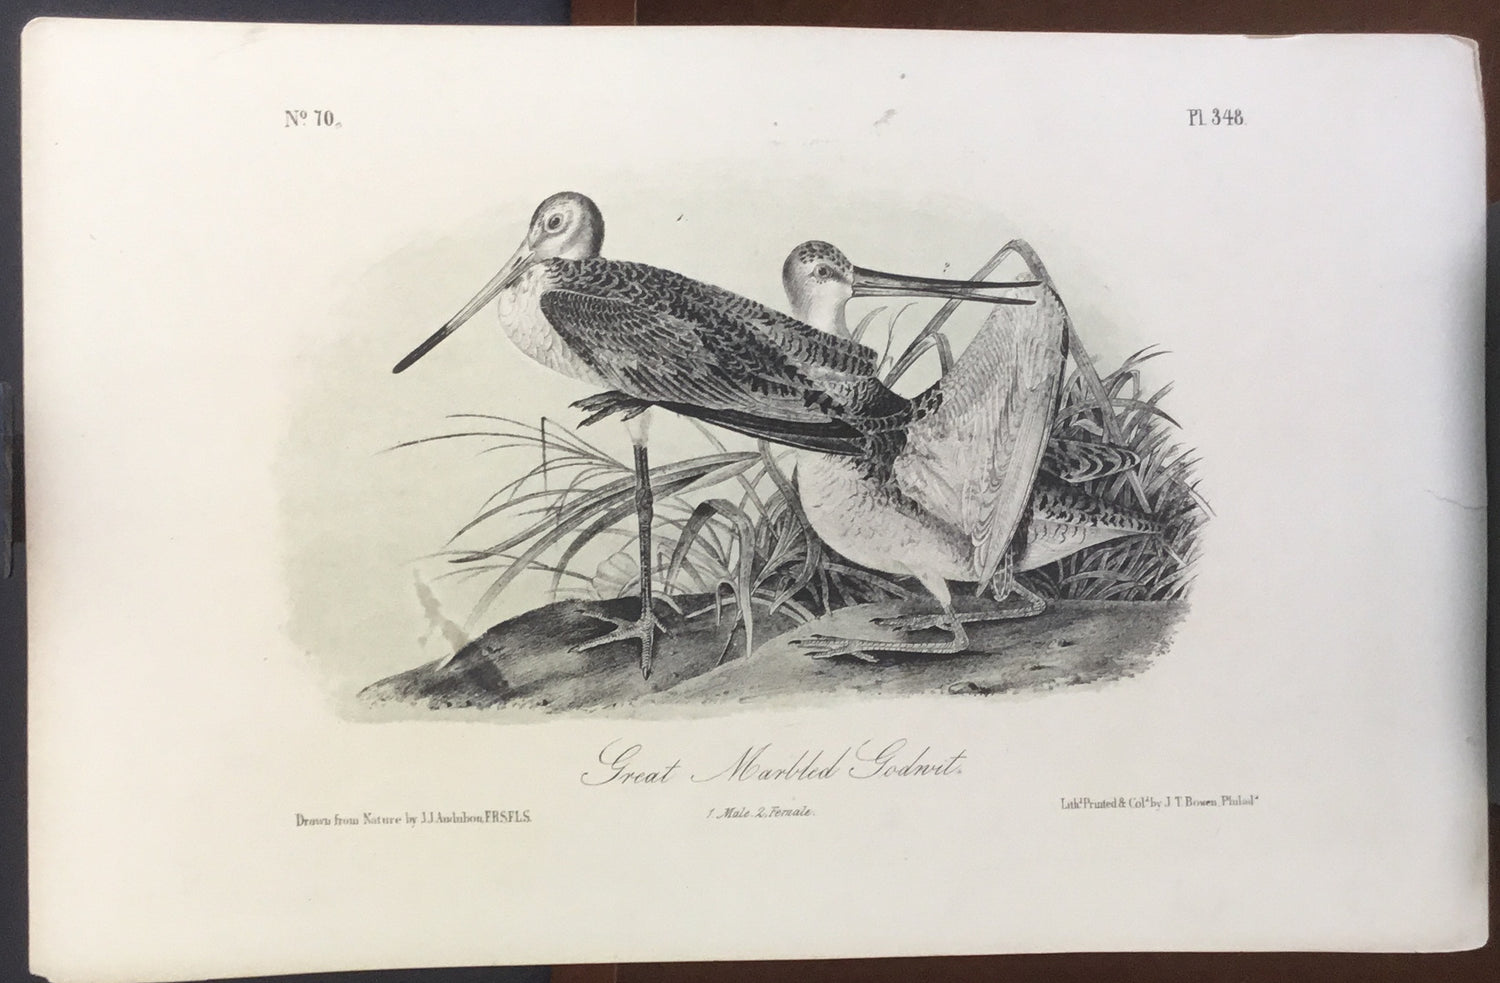 Audubon Octavo Great Marbled Godwit, plate 348, uncolored test sheet, 7 x 11